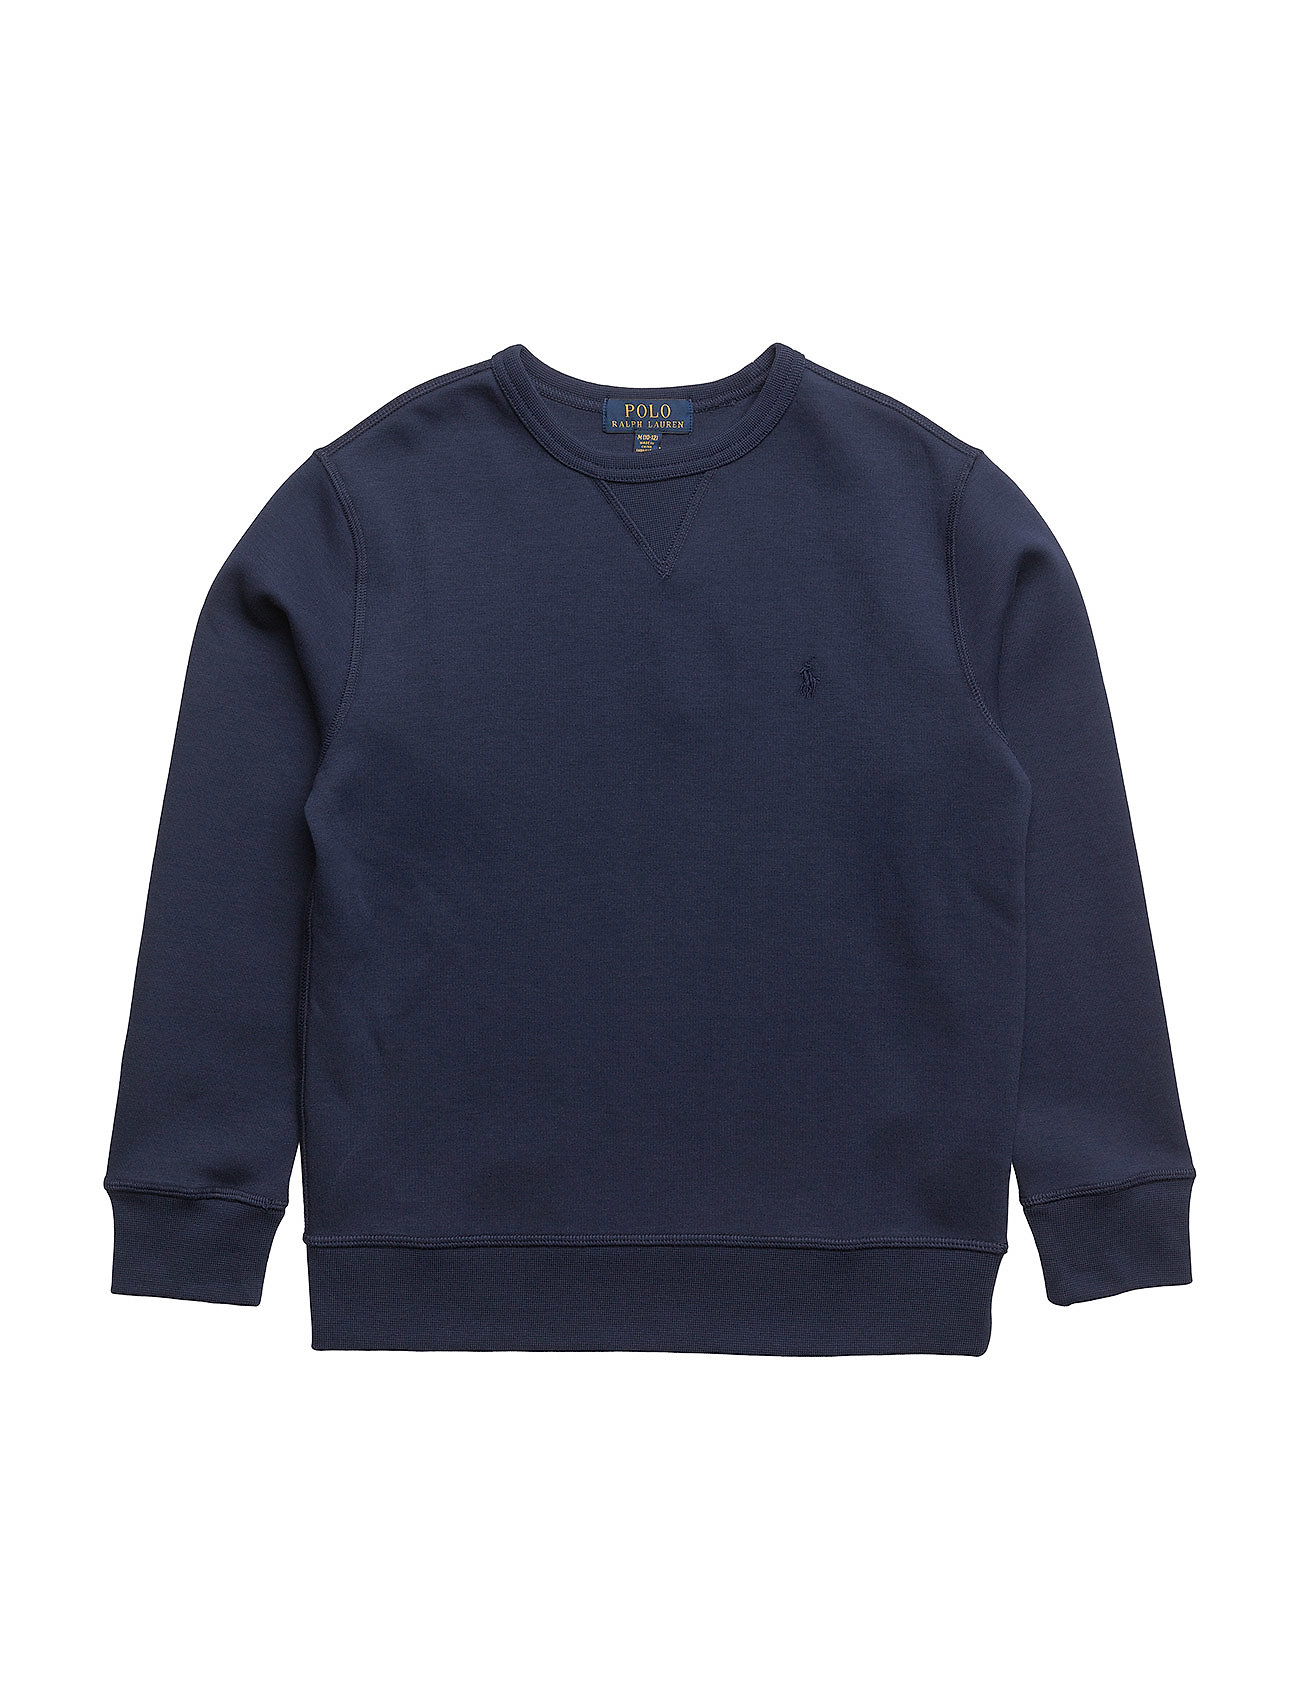 Ralph Lauren Kids DOUBLE KNIT TECH-PO CN-TP-KNT